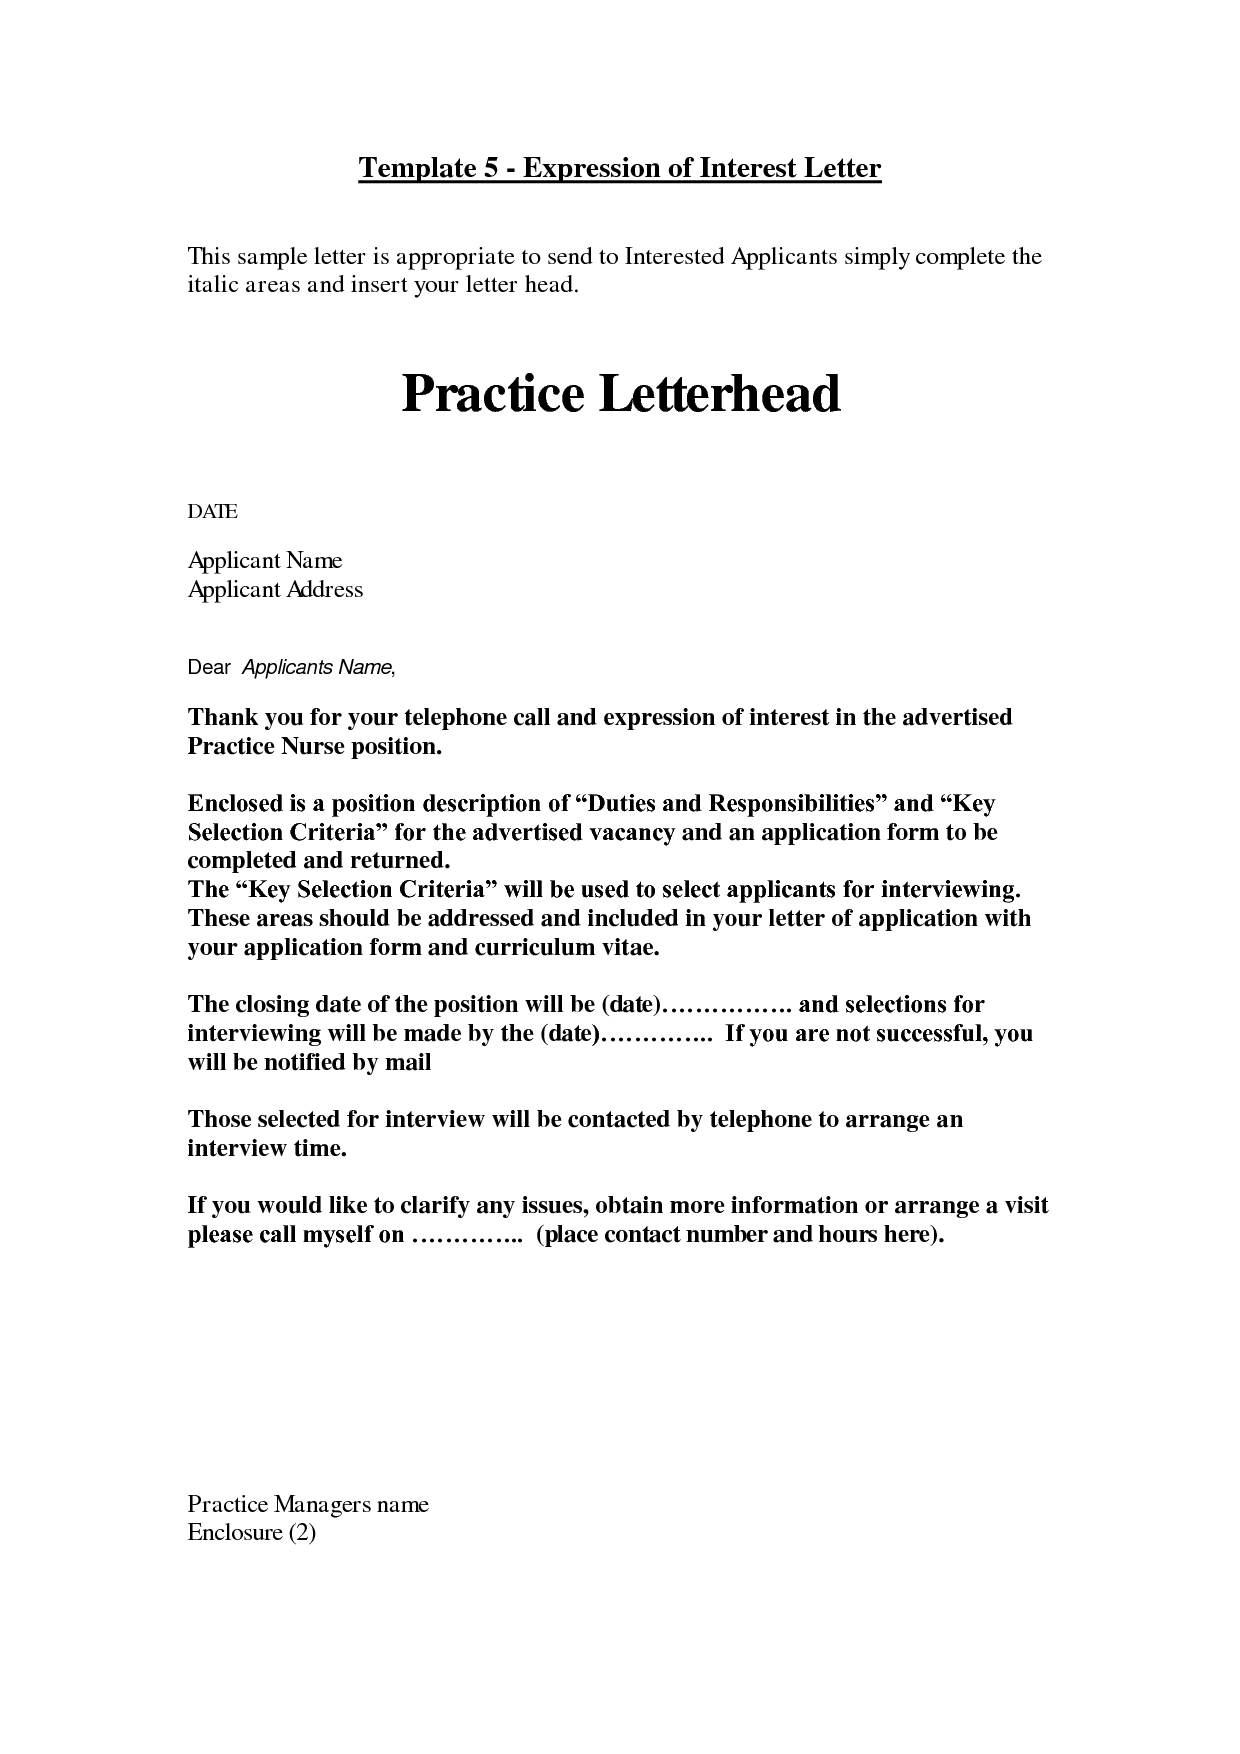 How To Write A Expression Interest Letter Cover Letter of